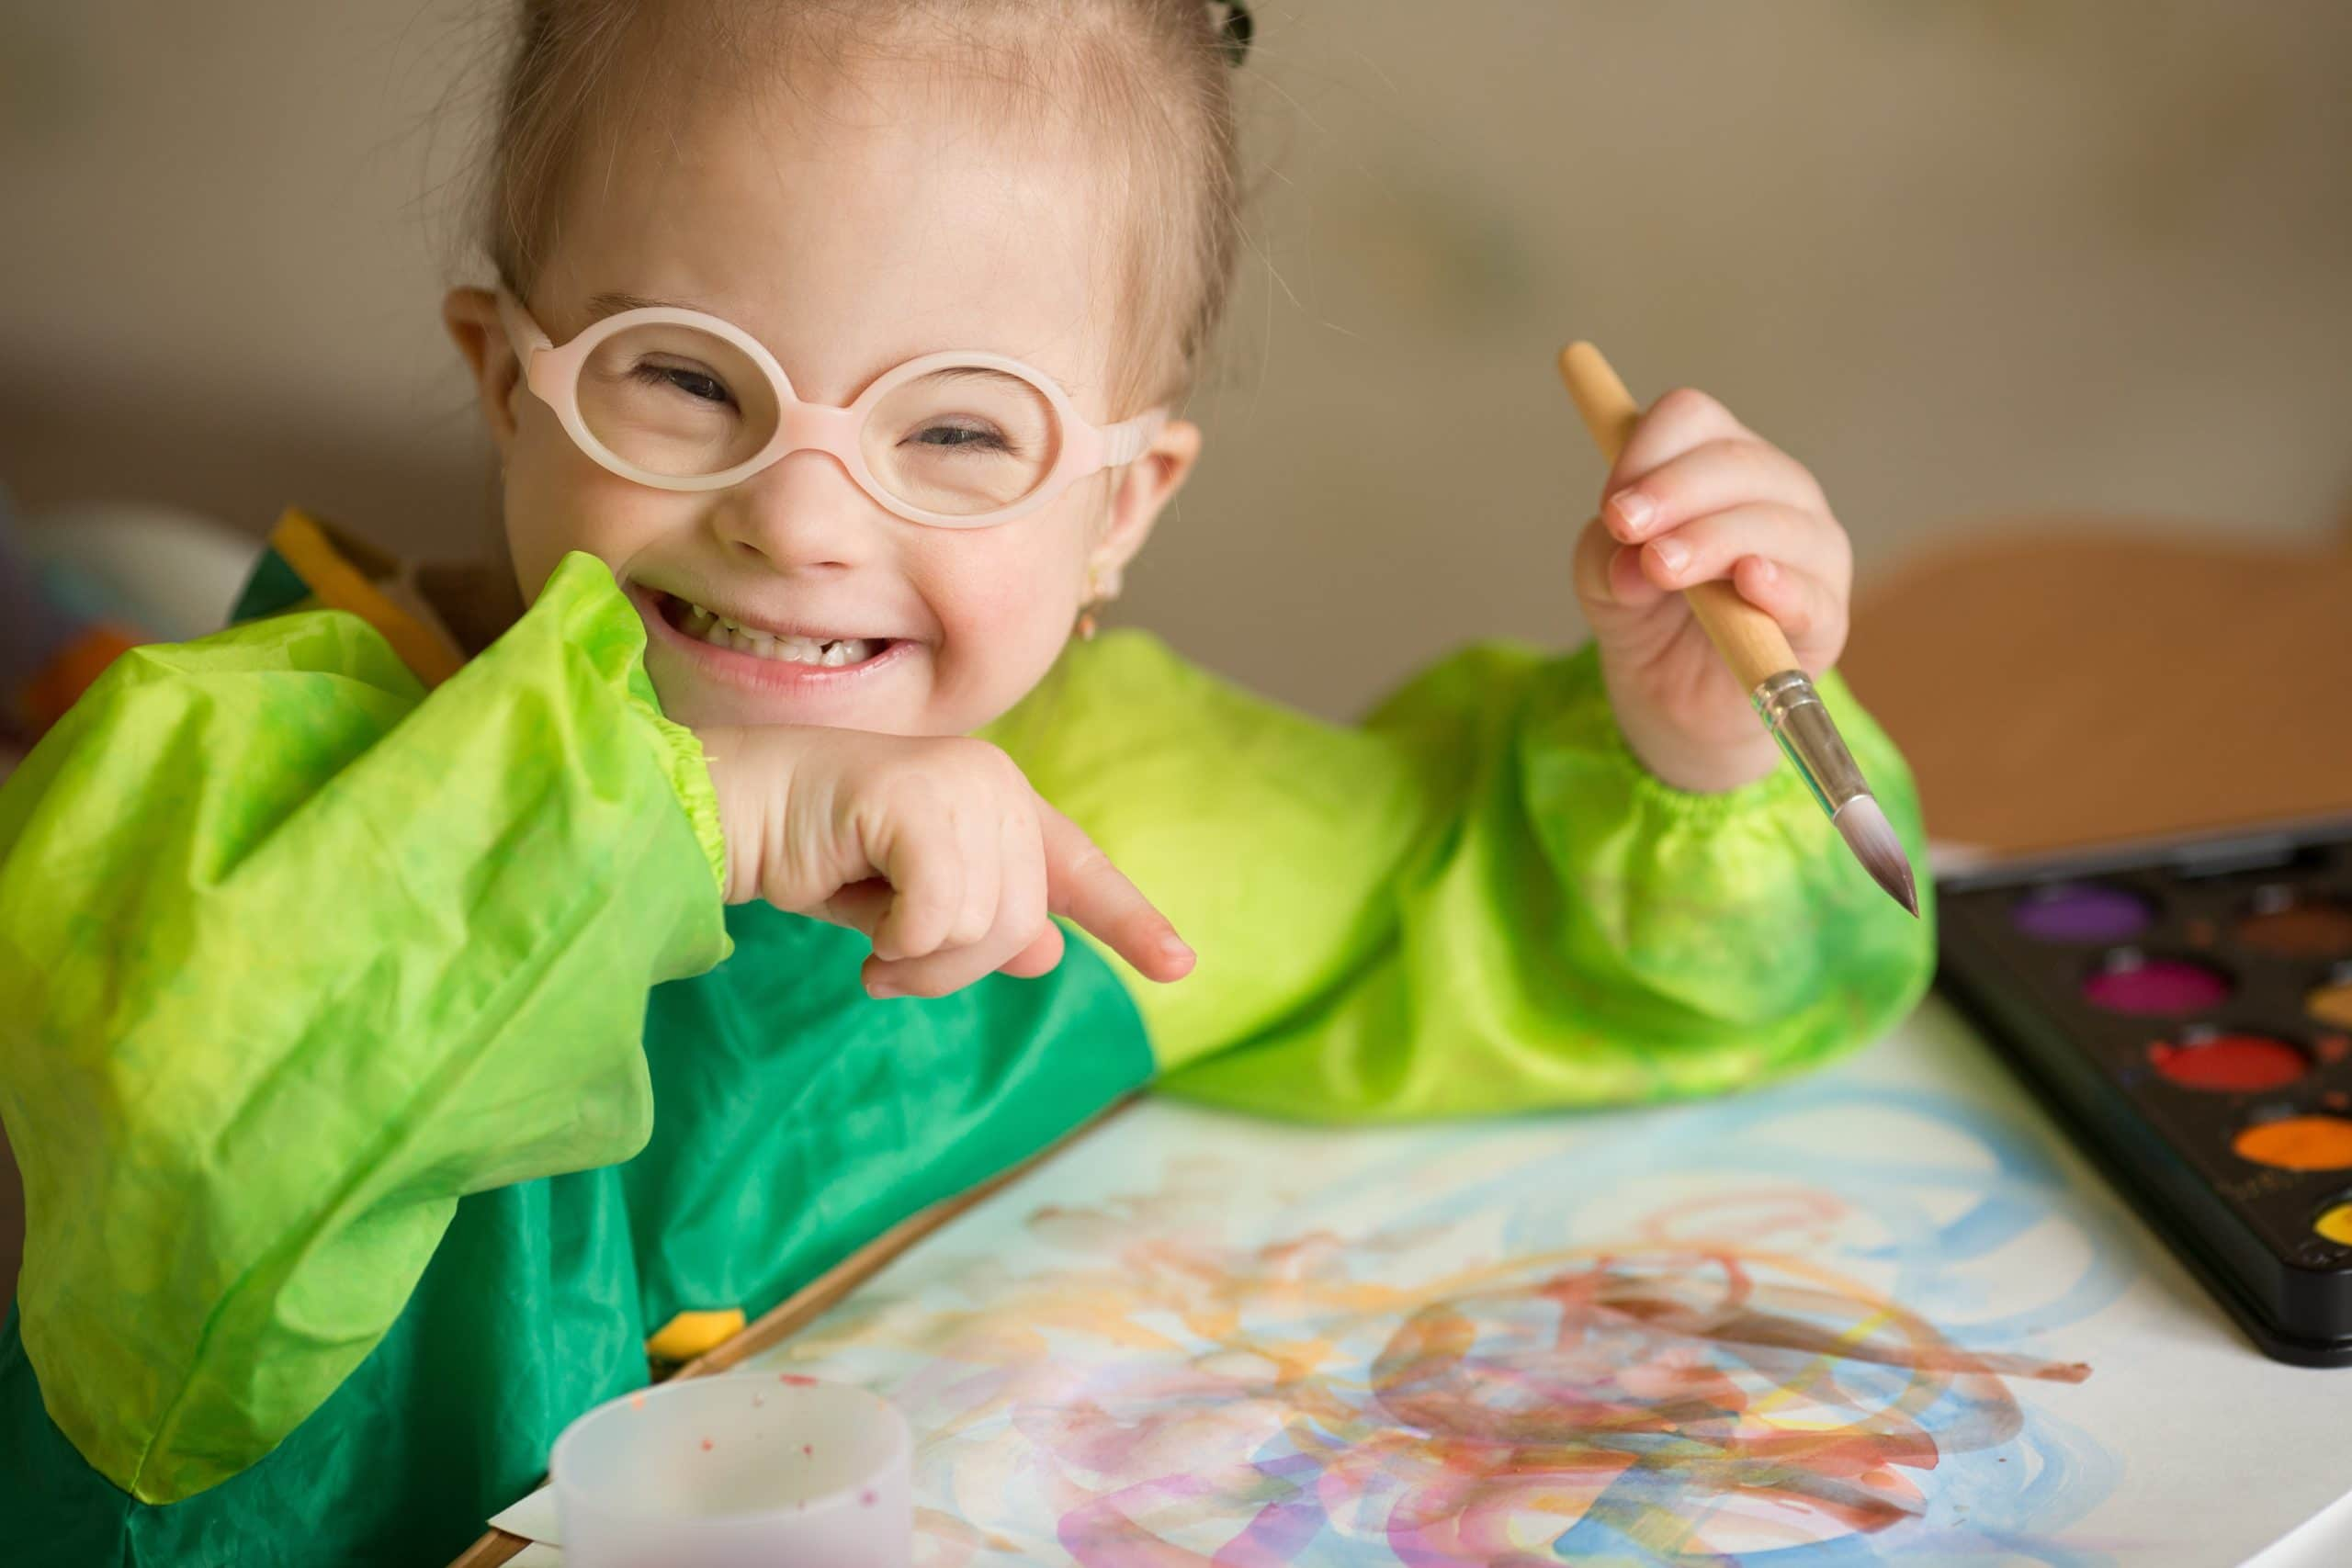 Little Girl Painting with Watercolor